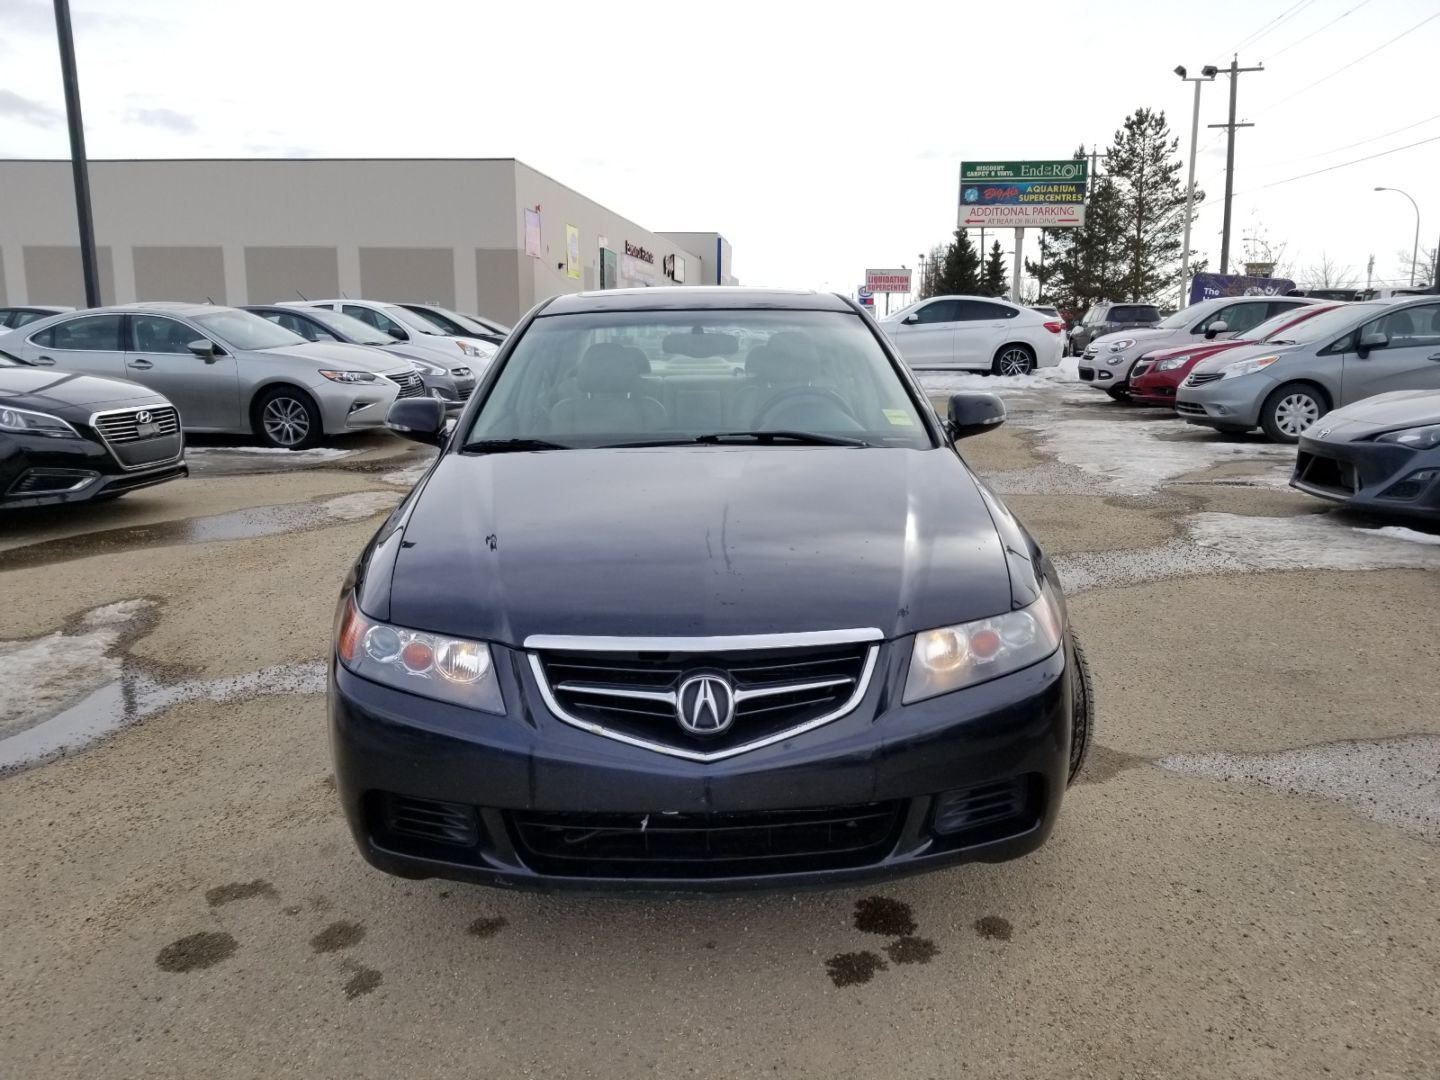 2004 Acura TSX  for sale in ,